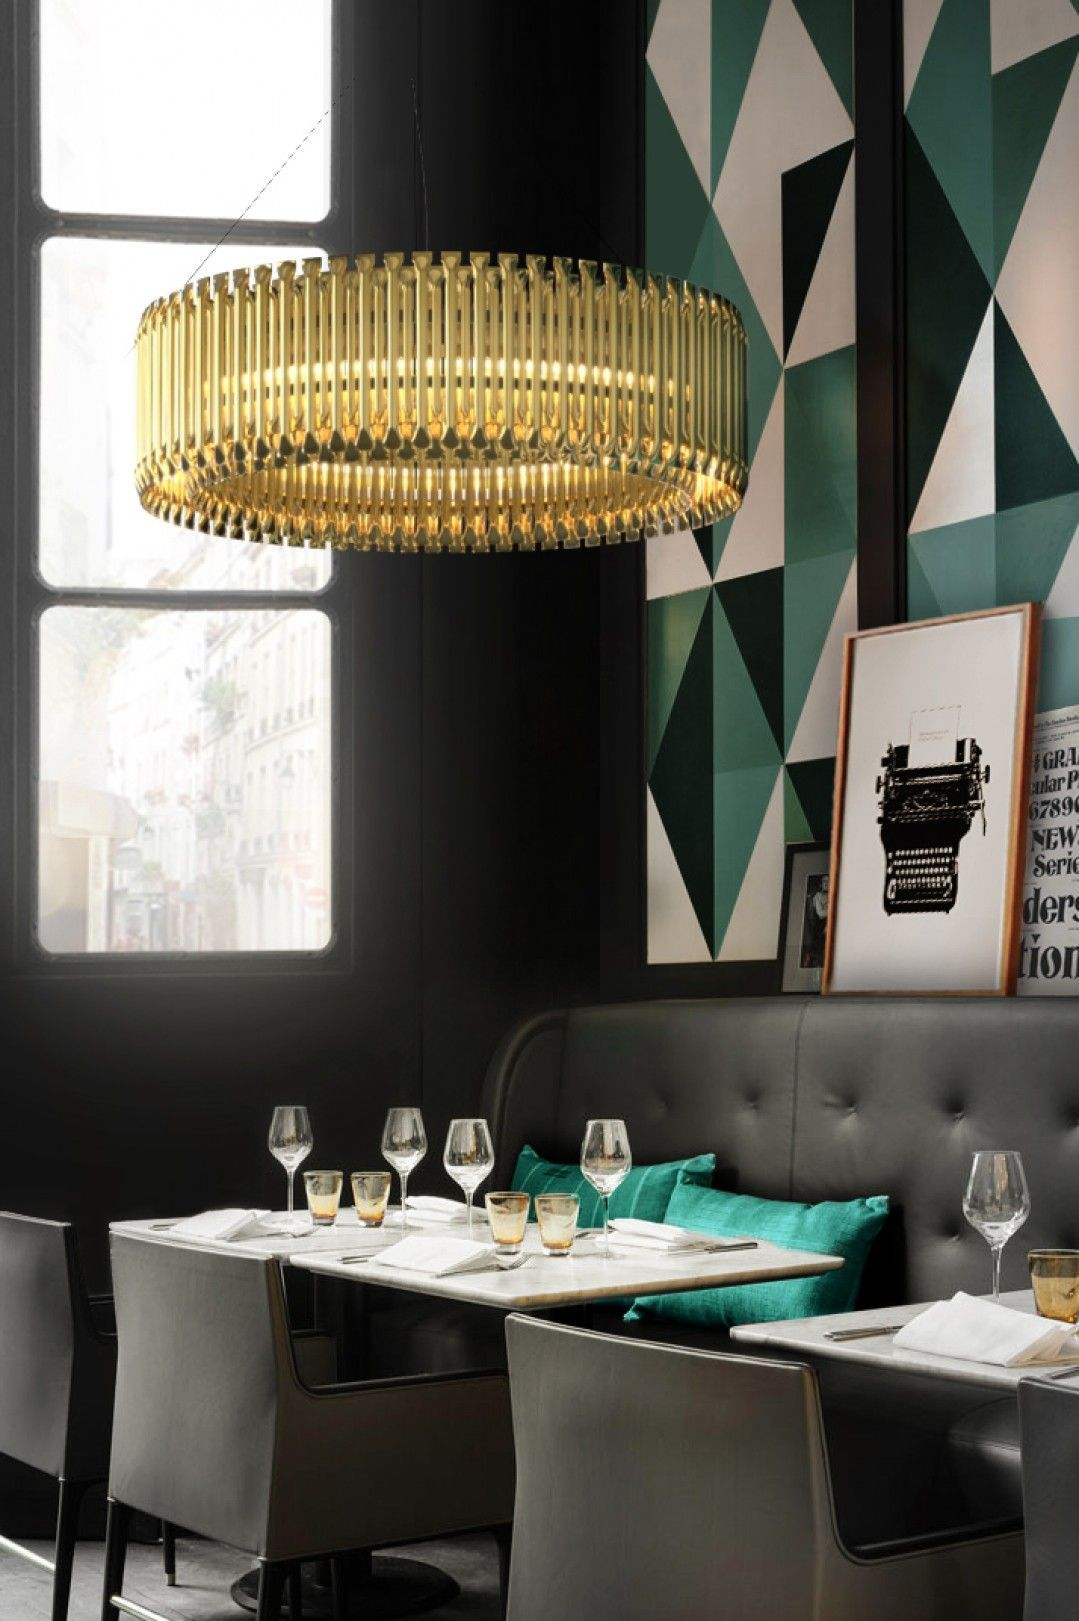 Have You Meet These Amazing Suspension Lamps Let Us Introduce To You 14 suspension lamps Have You Meet These Amazing Suspension Lamps? Let Us Introduce To You Have You Meet These Amazing Suspension Lamps Let Us Introduce To You 14 1